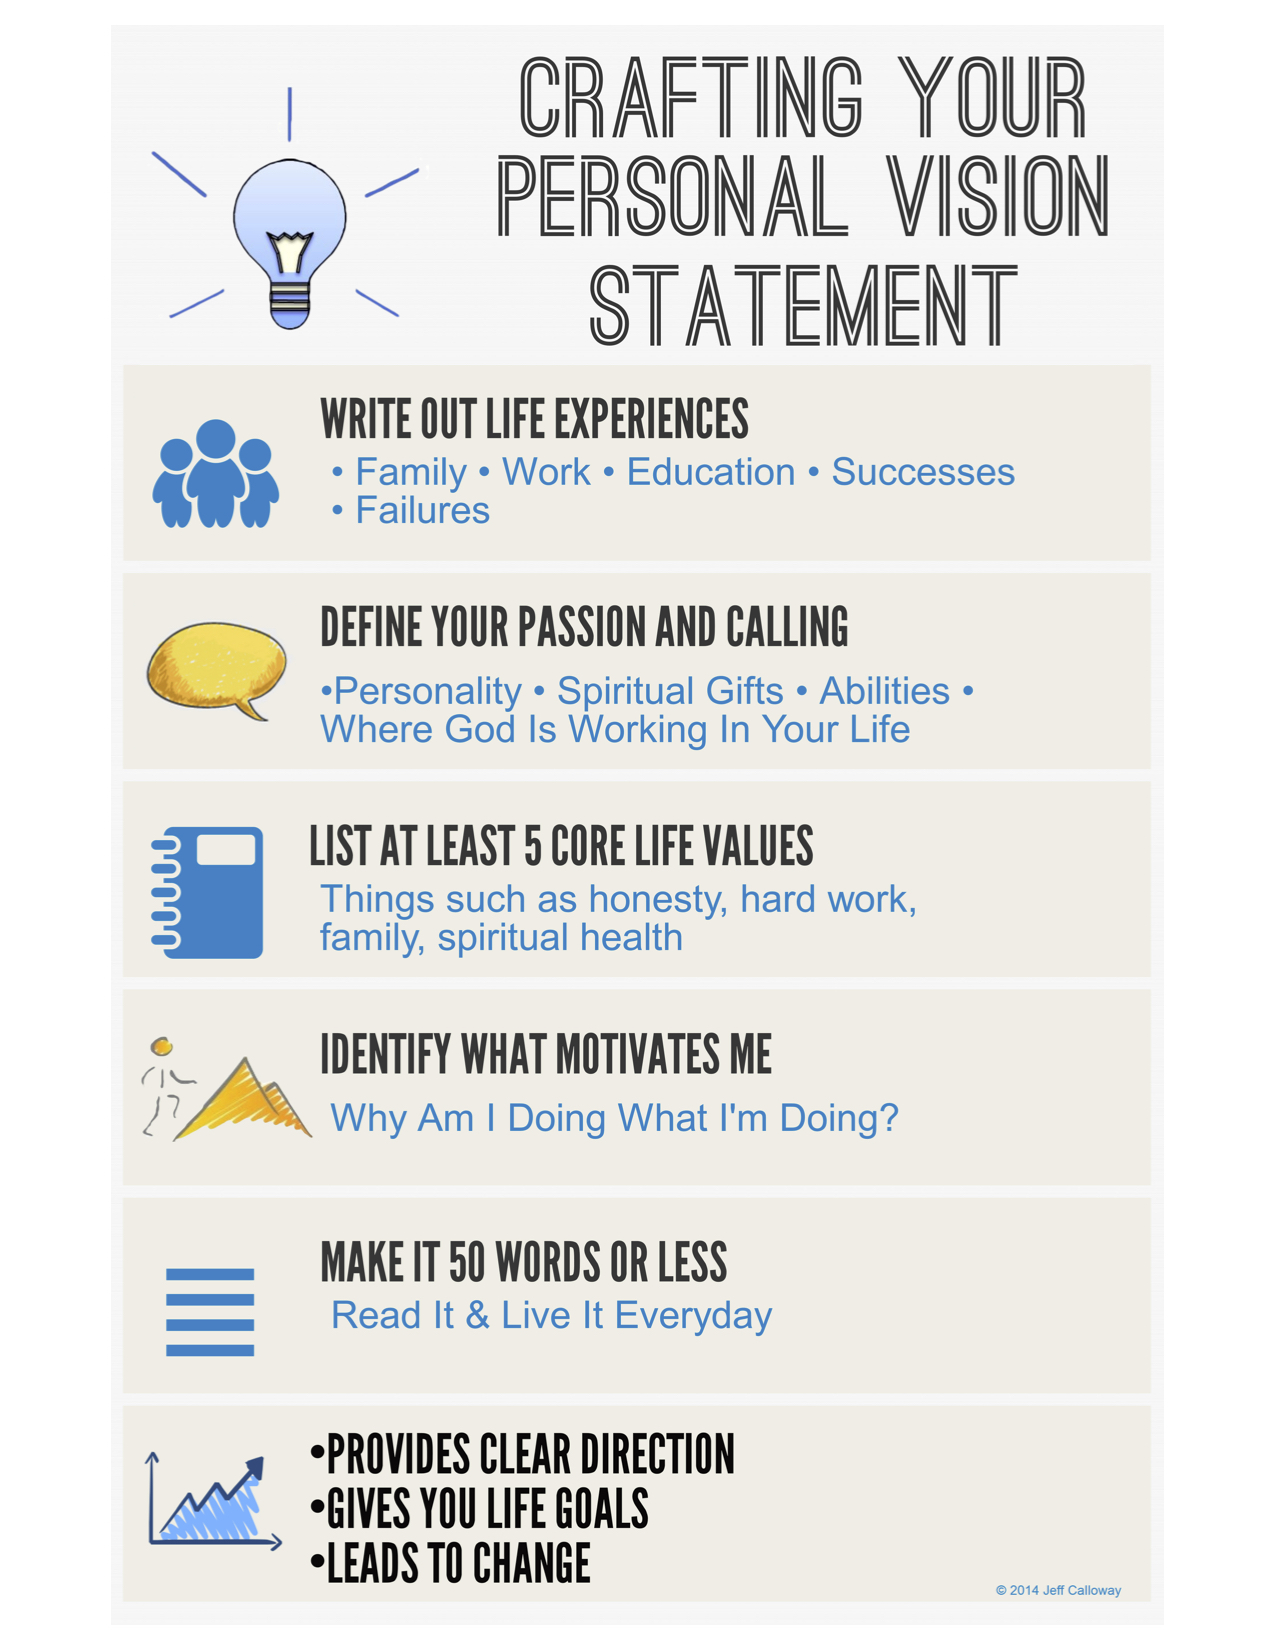 Crafting A Personal Vision Statement